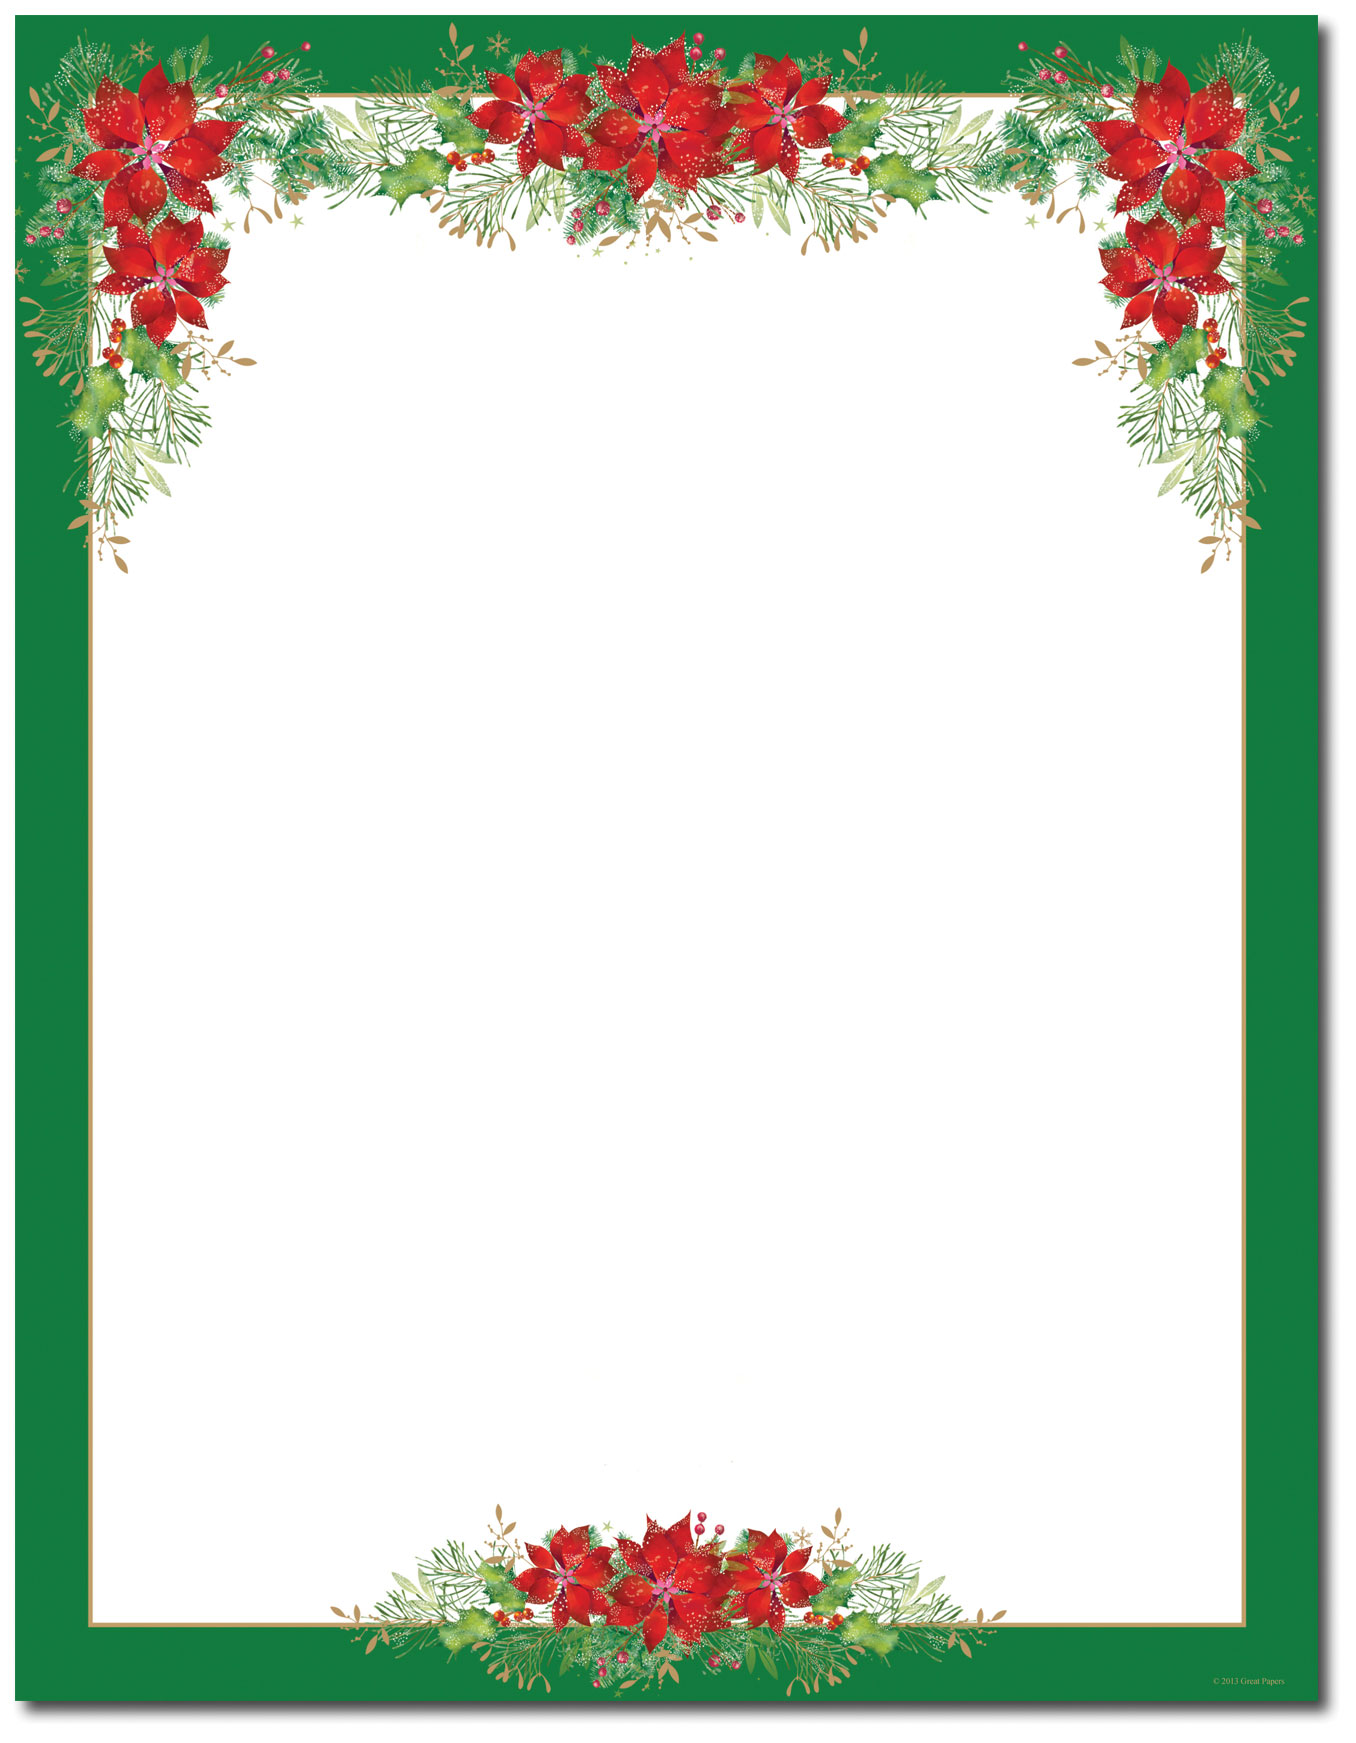 image regarding Free Printable Stationary Borders named 15 Poinsettia Webpage Border Options Pics - Cost-free Printable